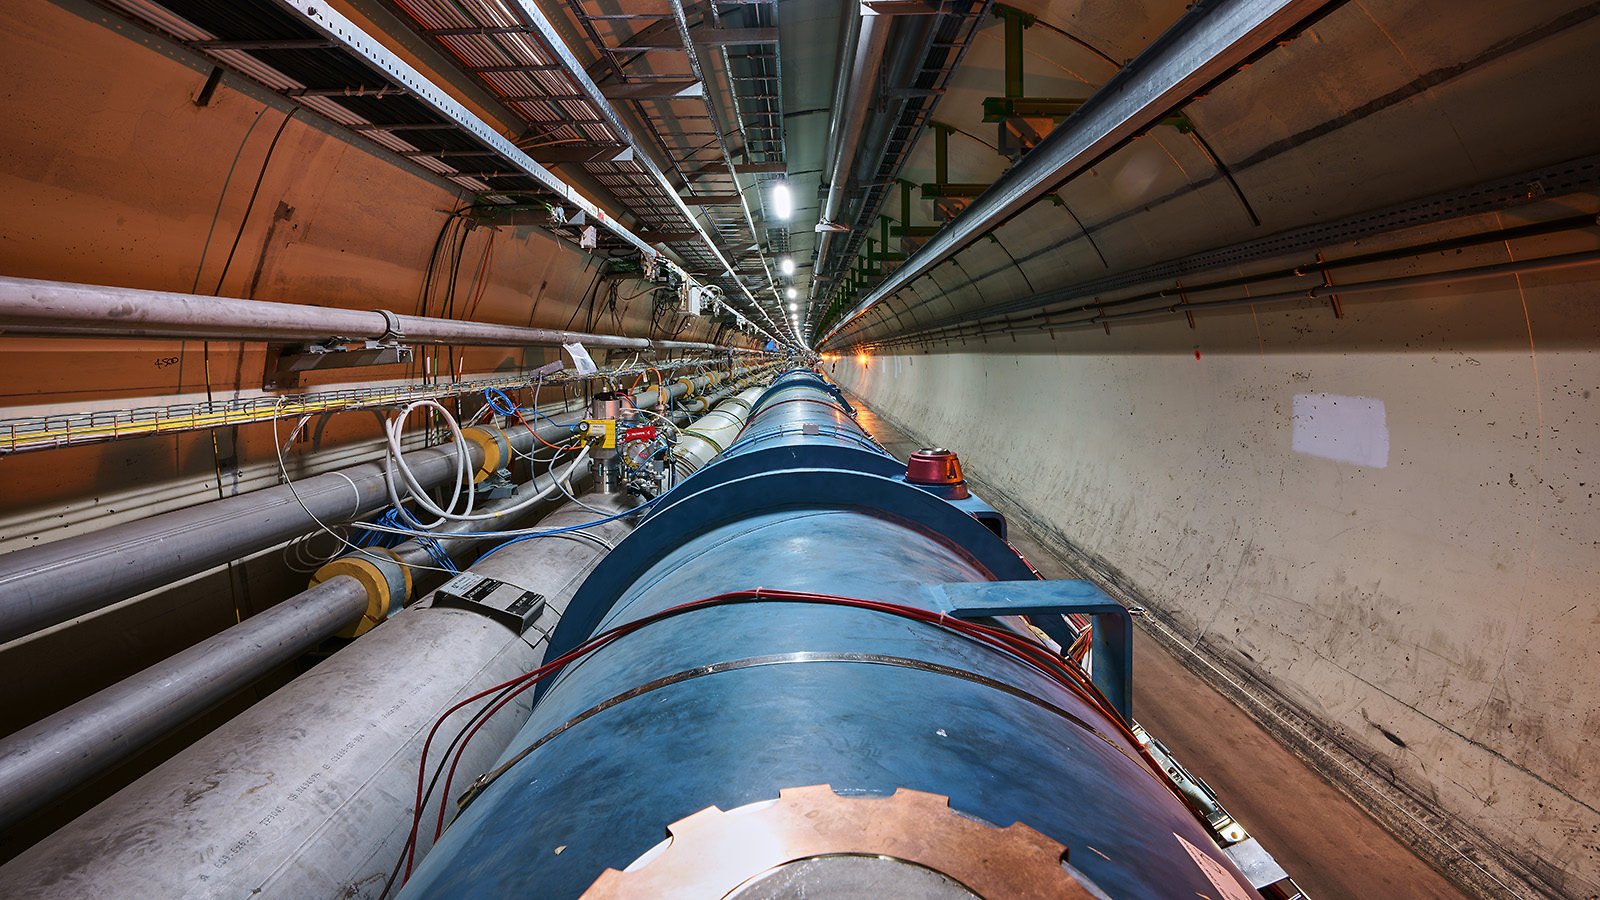 The LHC stretches into the distance